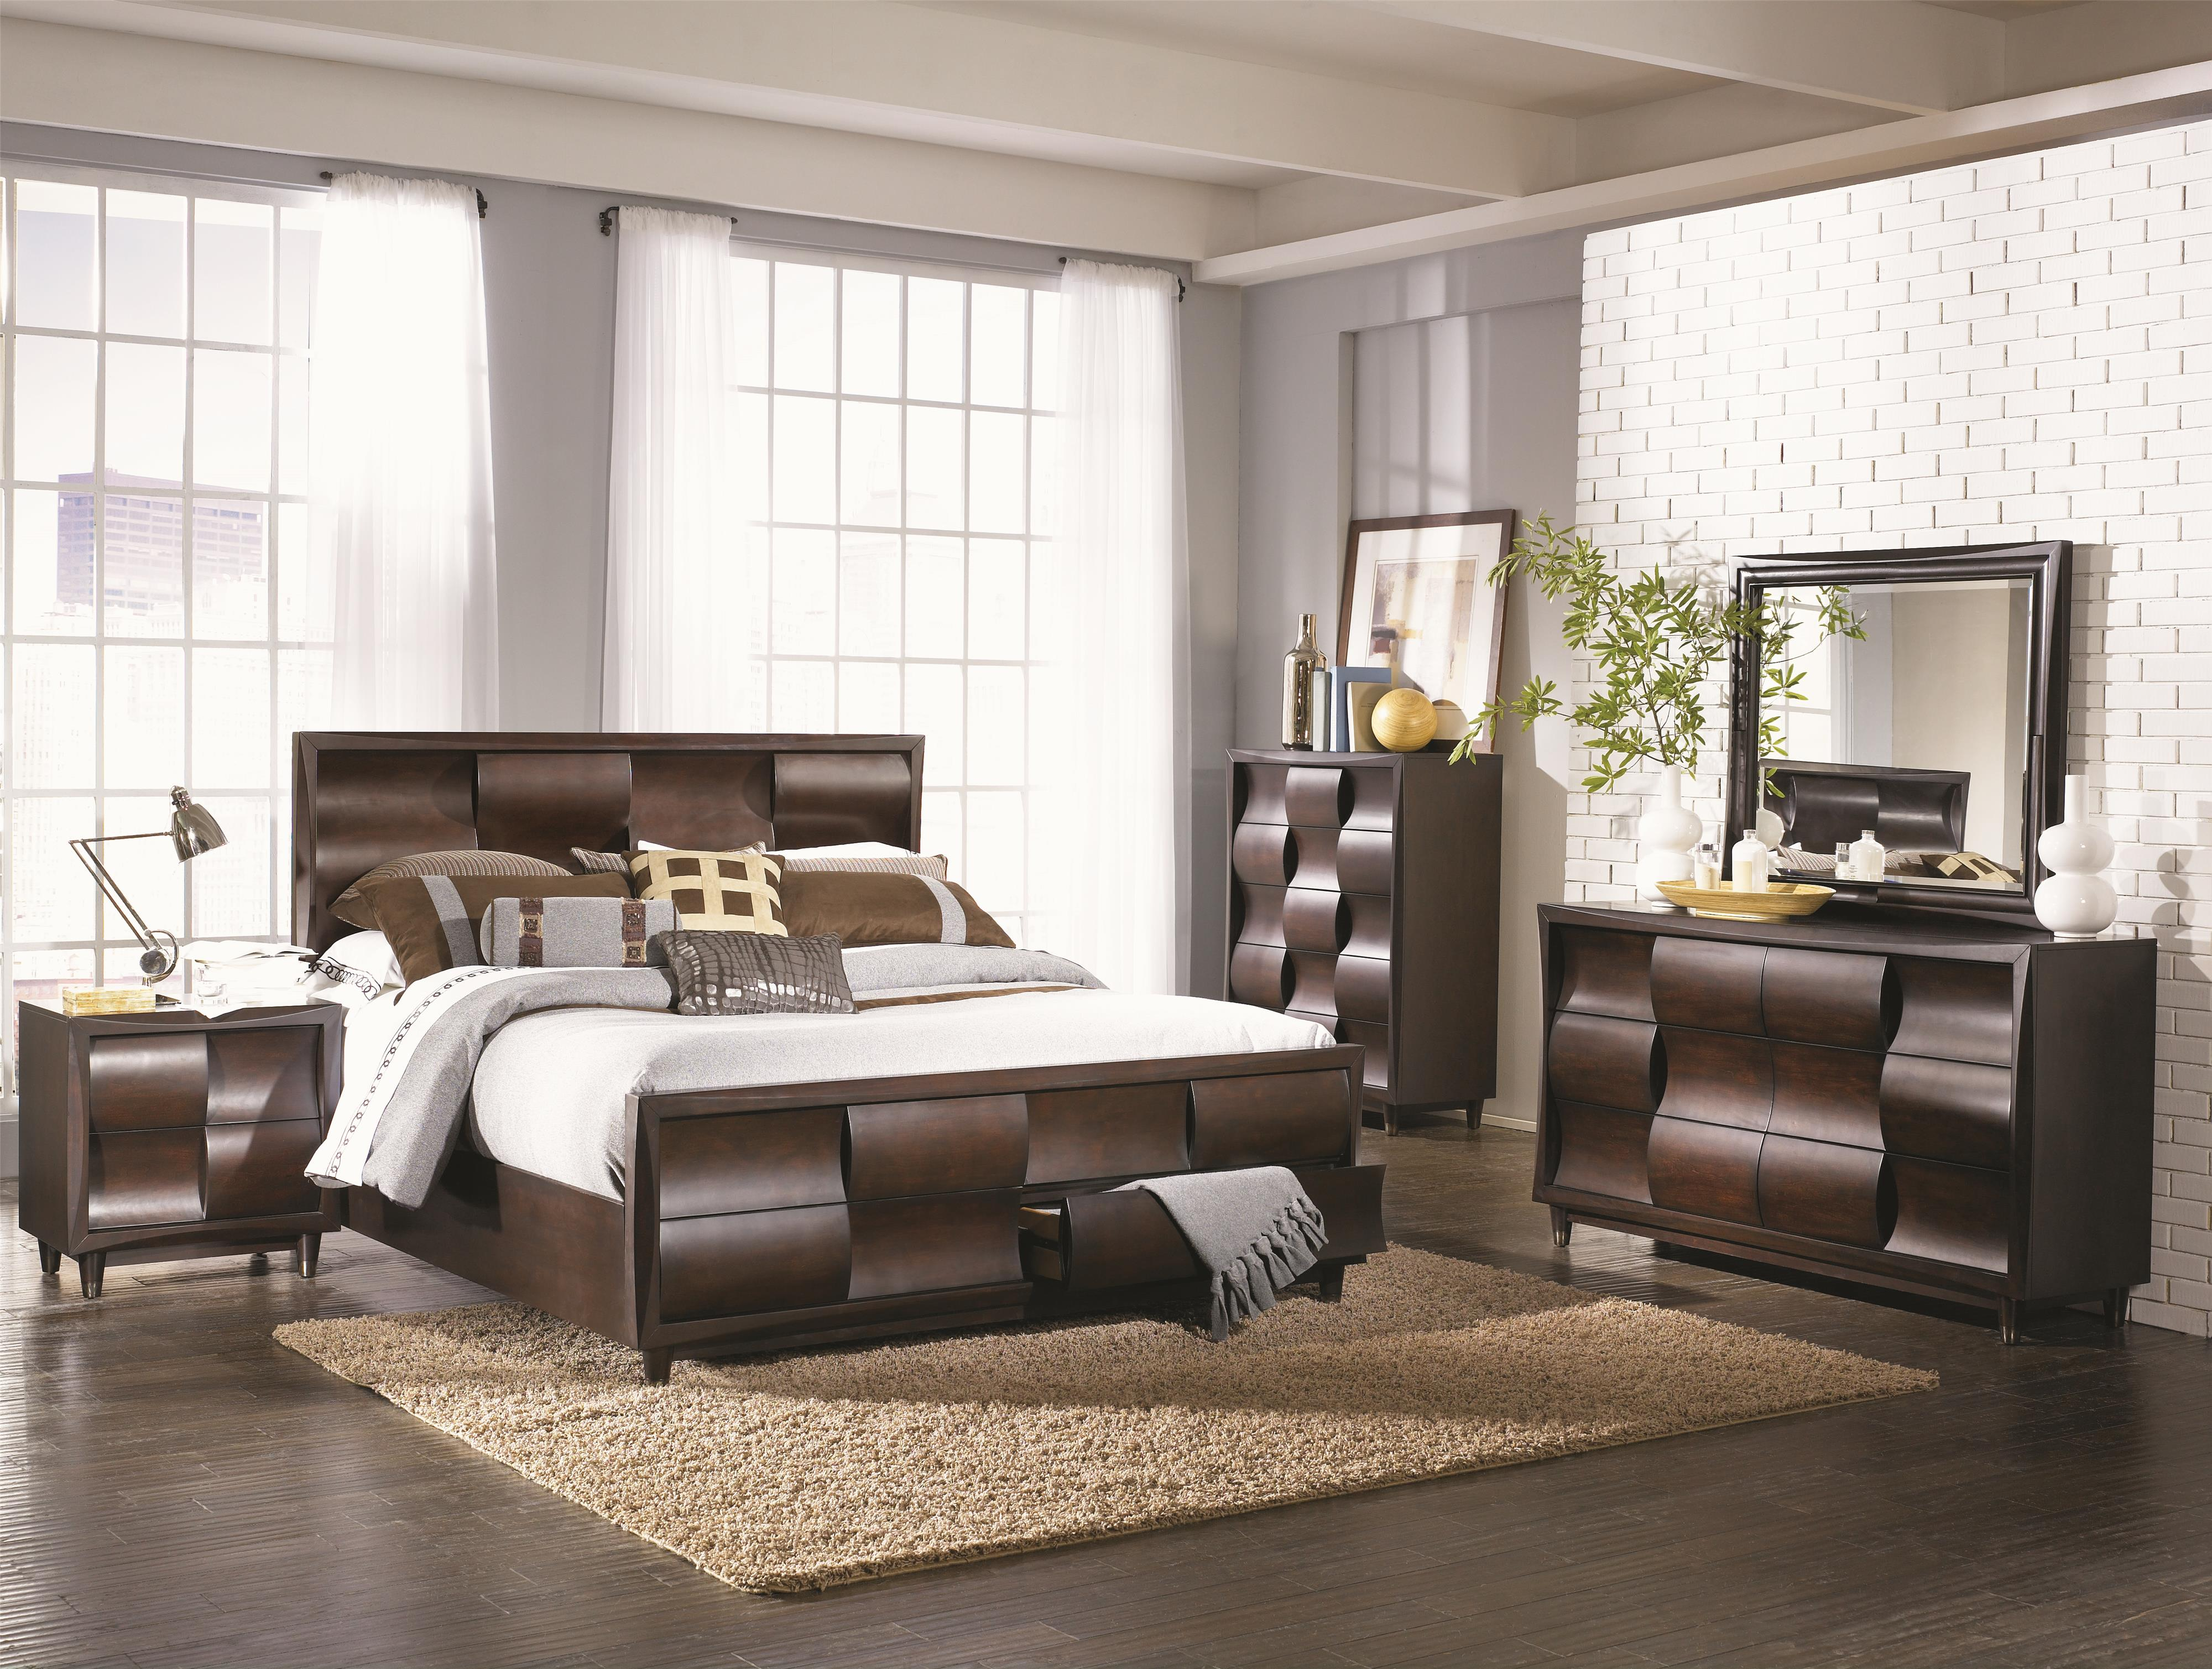 Magnussen Home Fuqua Queen Bedroom Group - Item Number: B1794 Q Bedroom Group 2